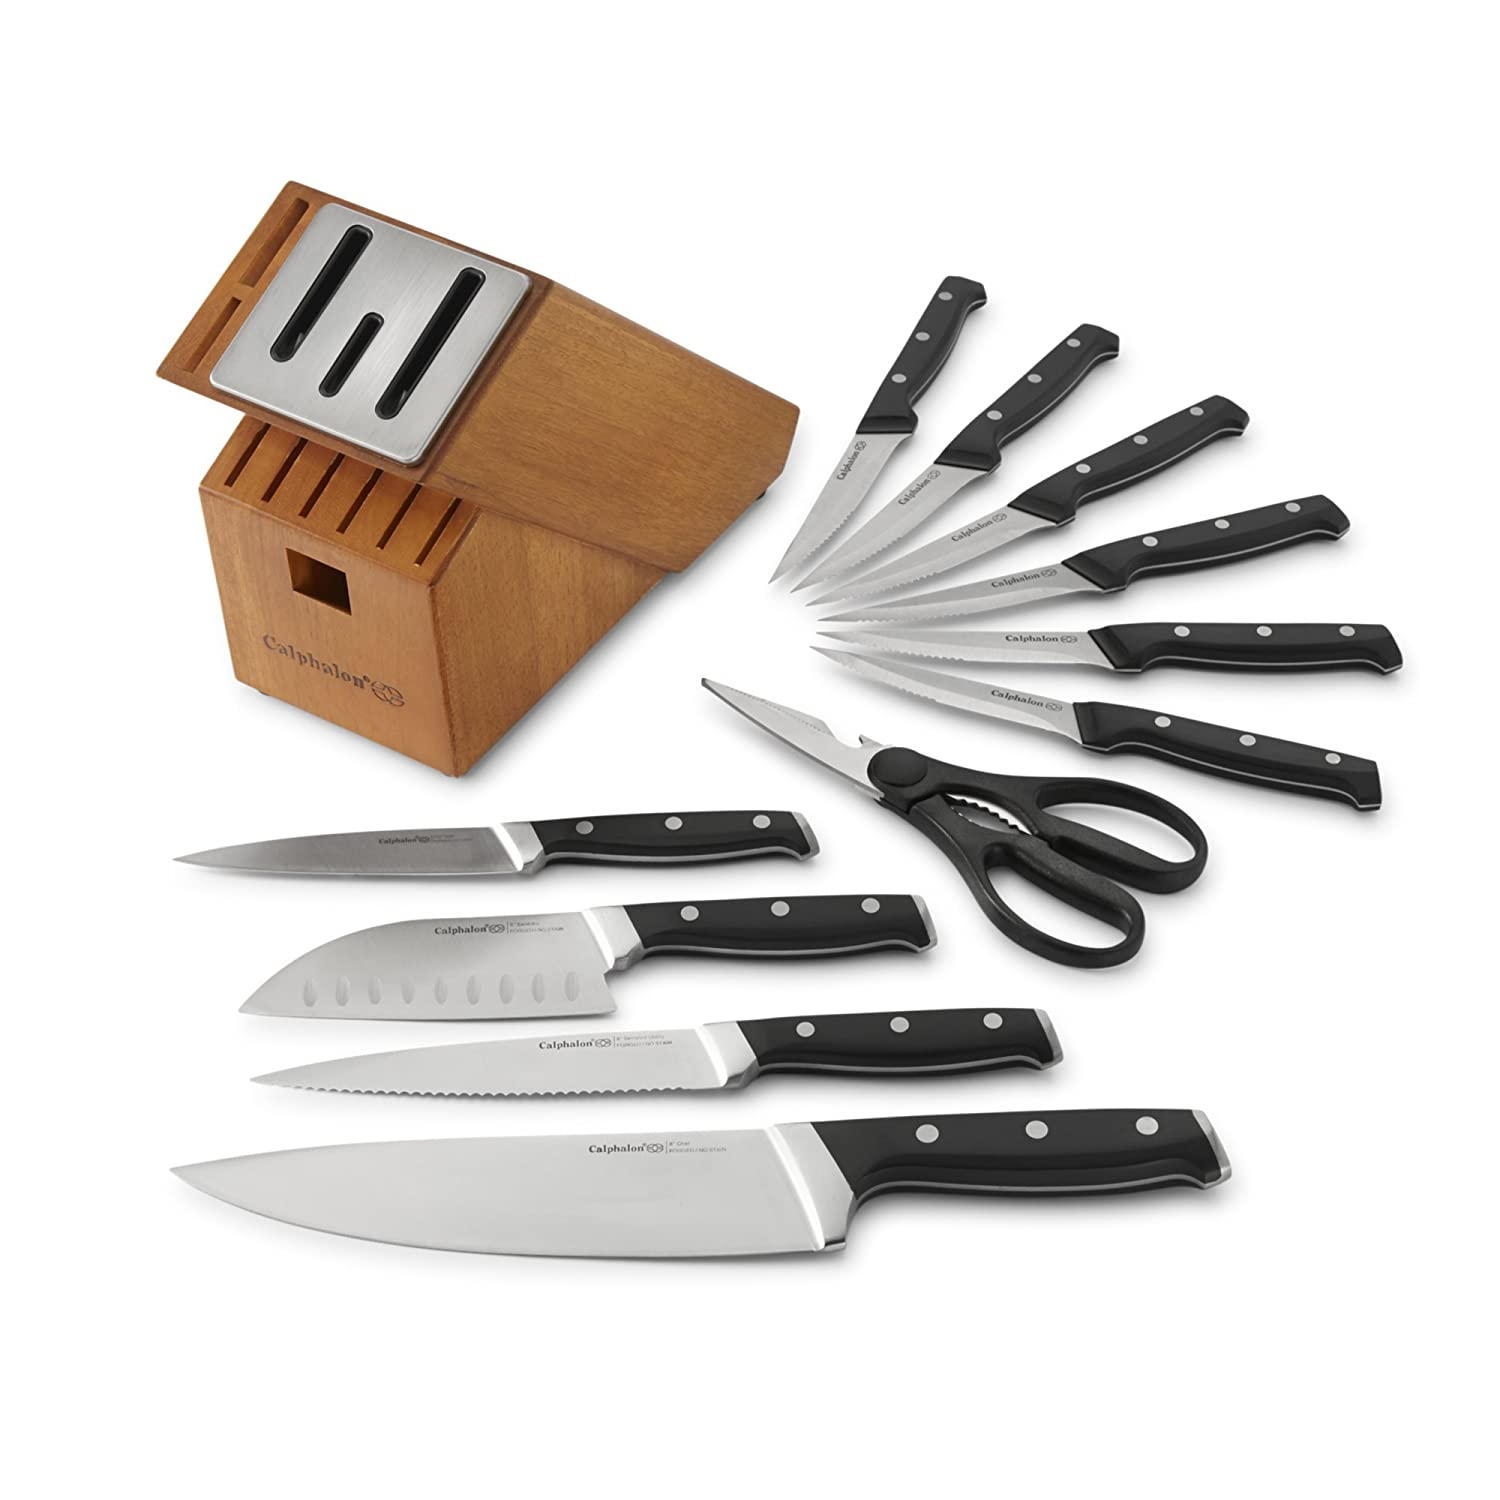 Calphalon Self-Sharpening Cutlery Knife Block Set with SharpIN Technology